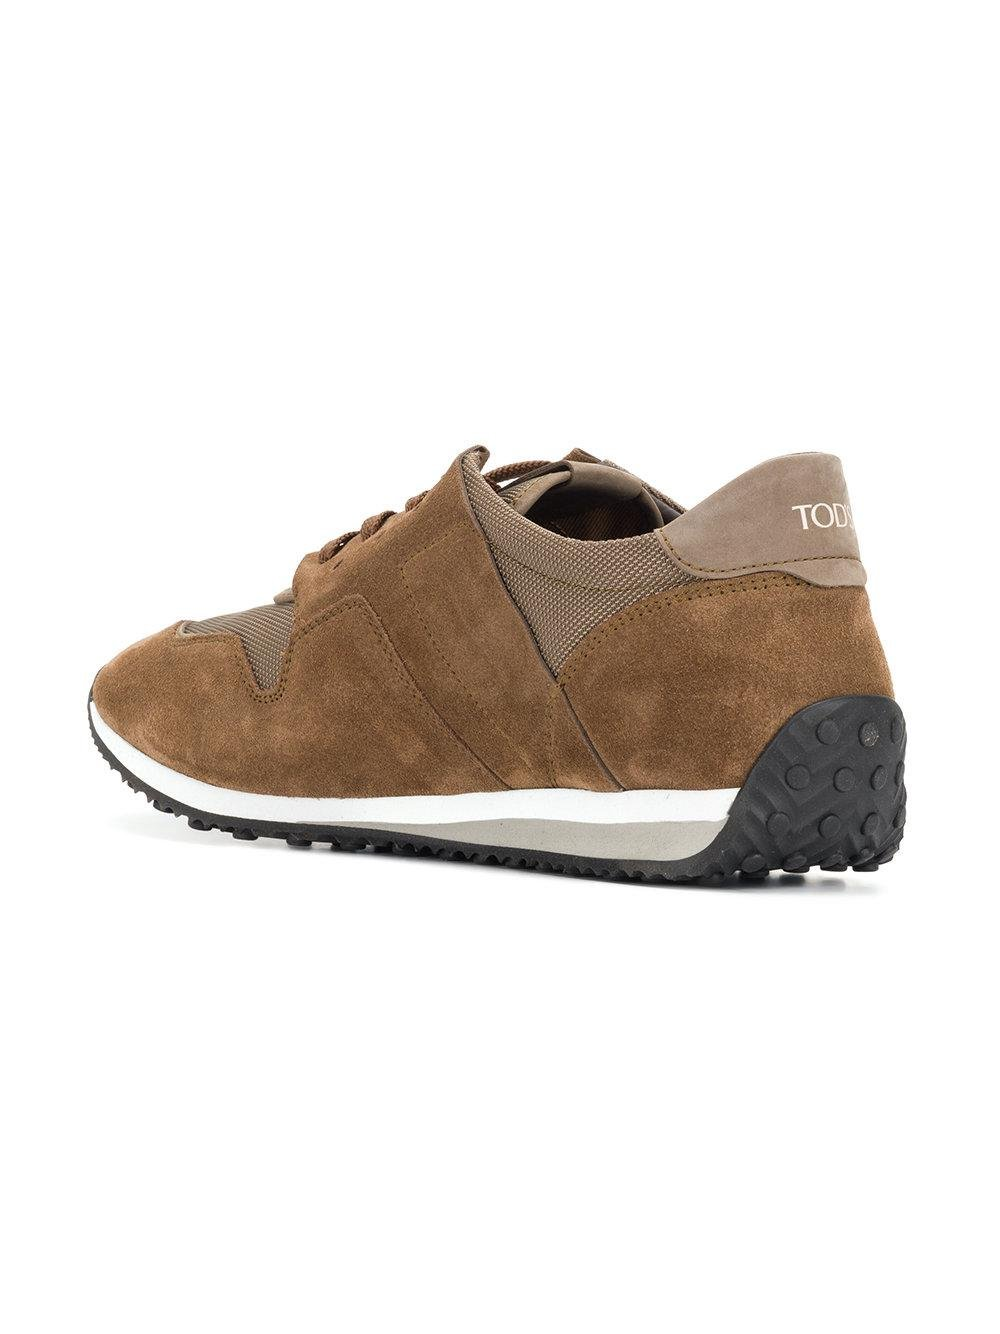 panelled lace-up sneakers - Brown Tod's p34629E9